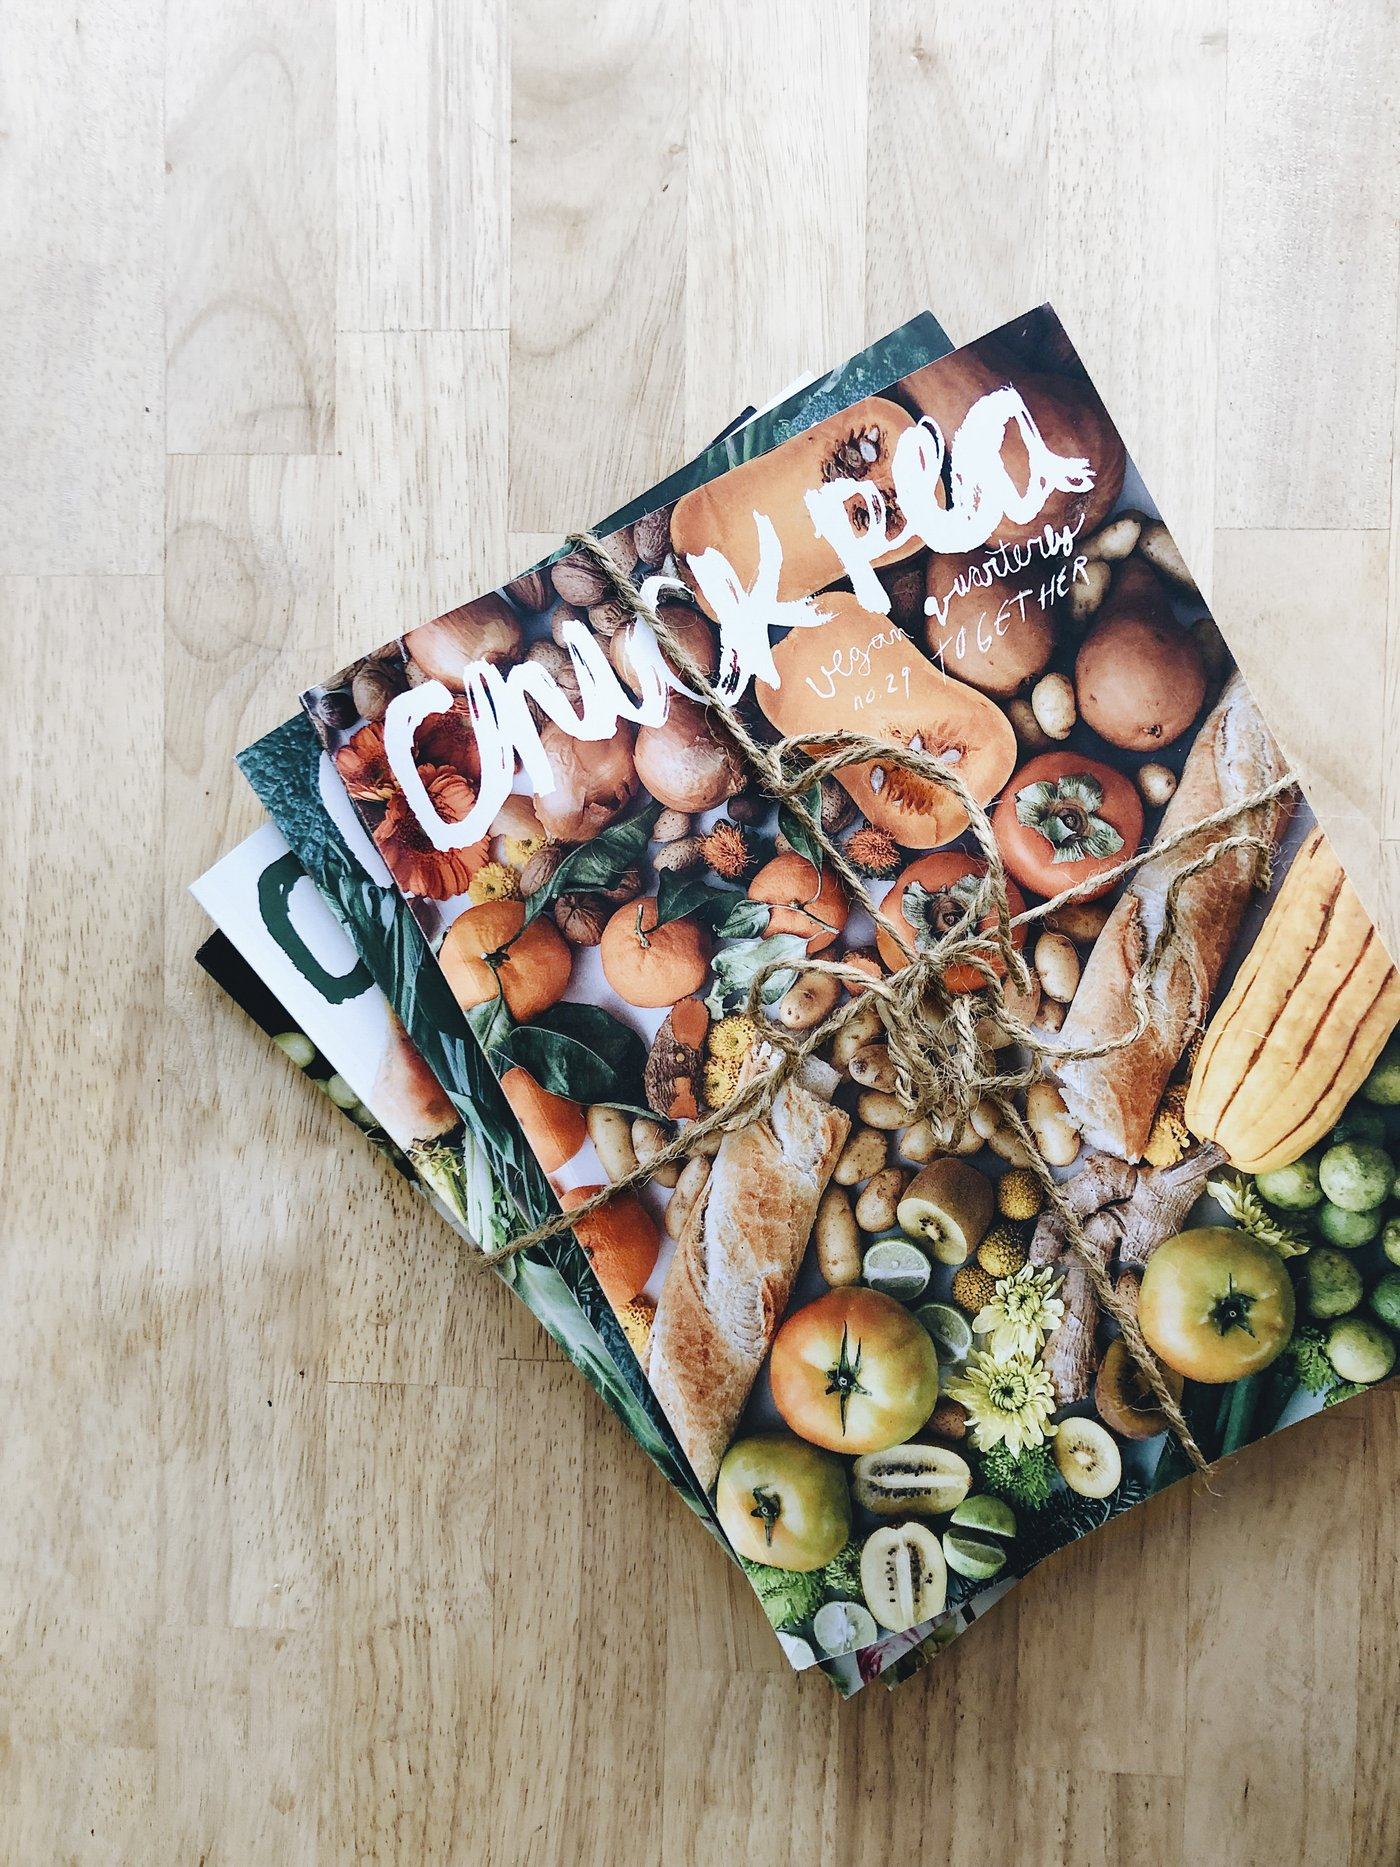 CHICKPEA - Chickpea is a vegan food & writing quarterly, bringing whole-foods cooking & living to a beautiful, practical level.Their issues are filled with evergreen recipes, DIY projects, personal stories, how-to guides, and articles on important topics.You can subscribe to Chickpea here.